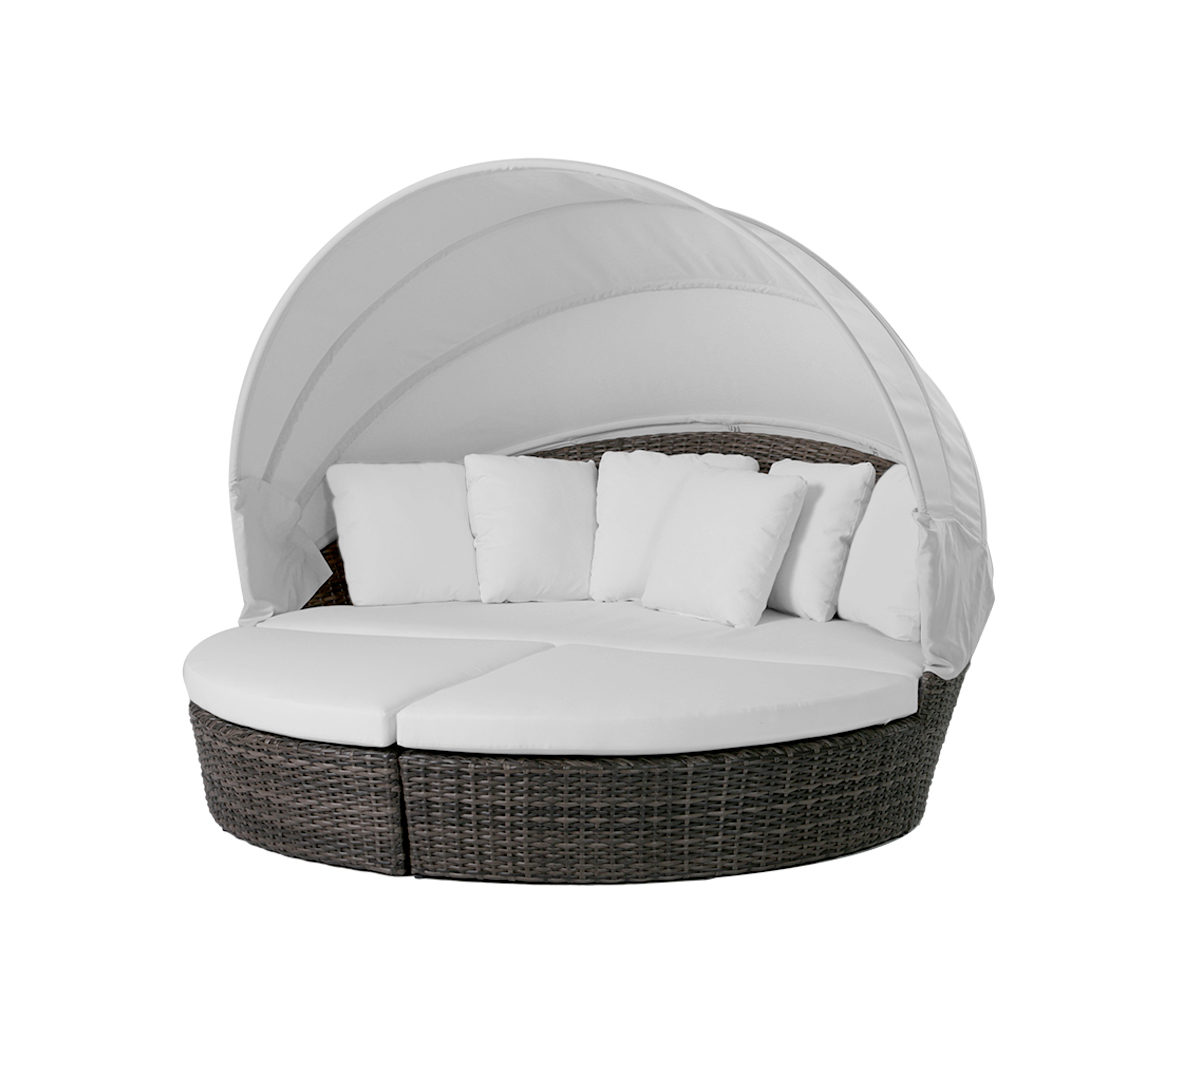 The Coral Gables cabana daybed in brown frame with white cushions and canopy.